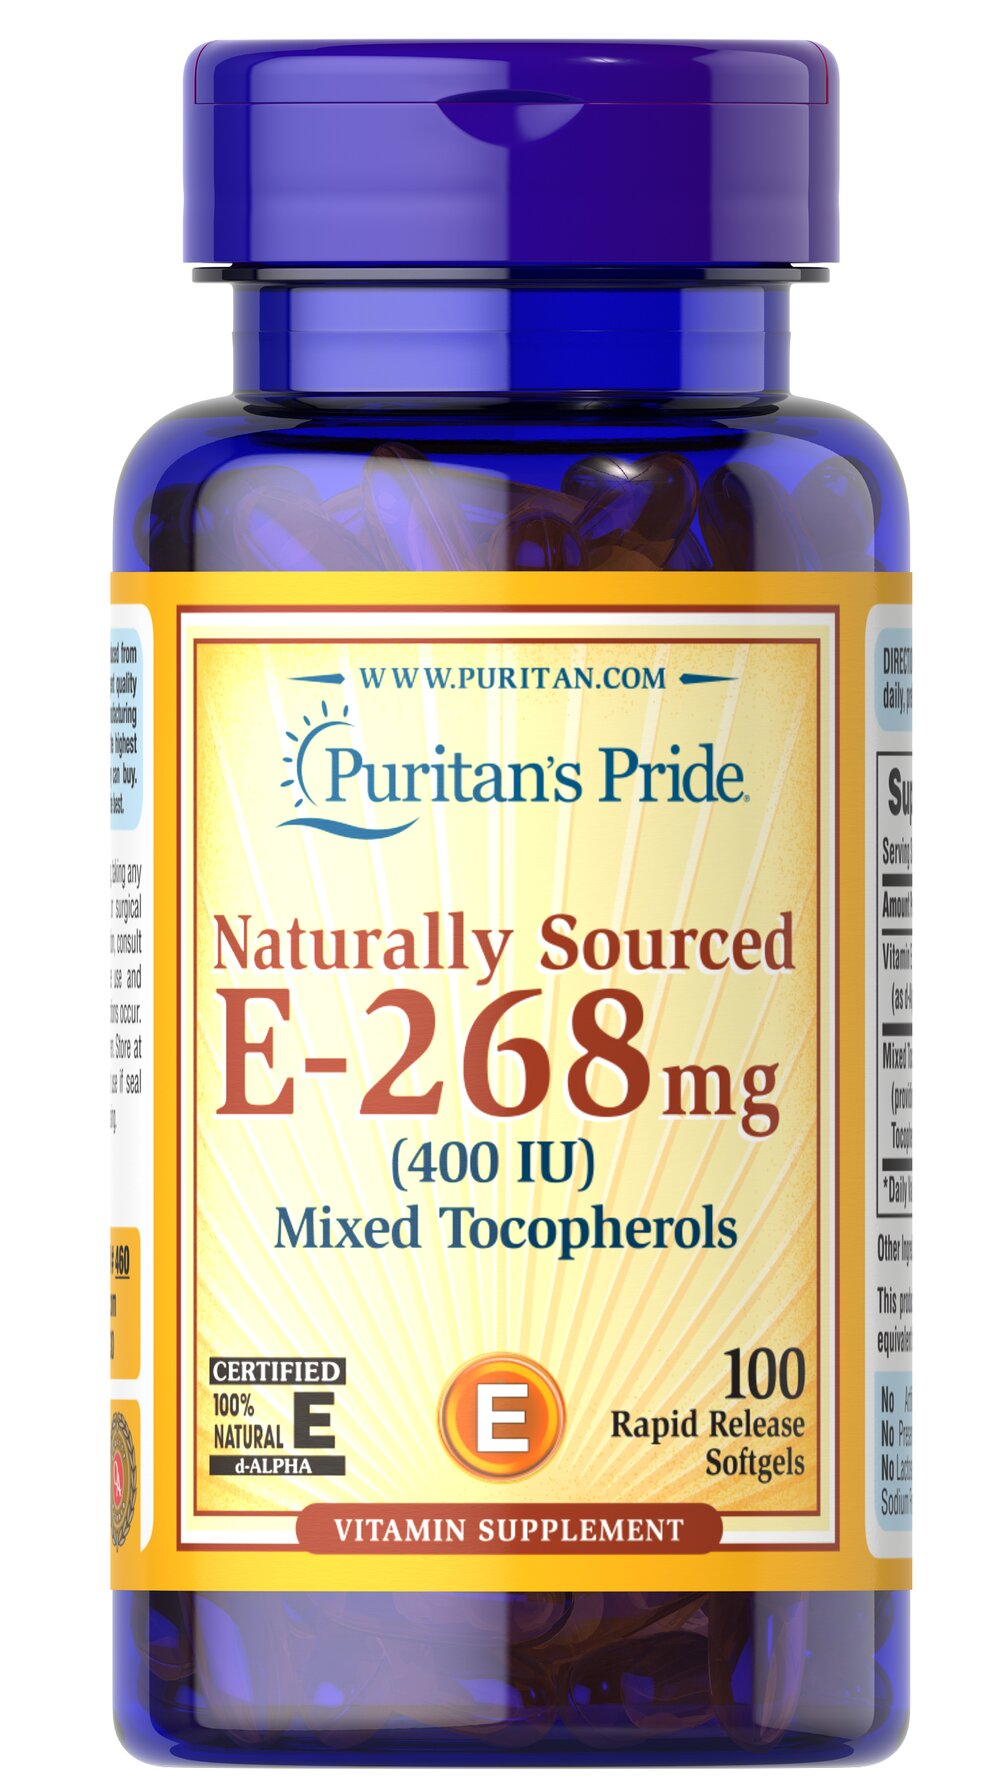 Vitamin E-400 iu Mixed Tocopherols Natural <p><strong>Vitamin E</strong> promotes immune function and helps support cardiovascular health.** Vitamin E is also a powerful <strong>antioxidant</strong> that helps fight cell-damaging free radicals in the body.** Studies have shown that oxidative stress caused by free radicals may contribute to the premature aging of cells.**</p> 100 Softgels 400 IU $17.69